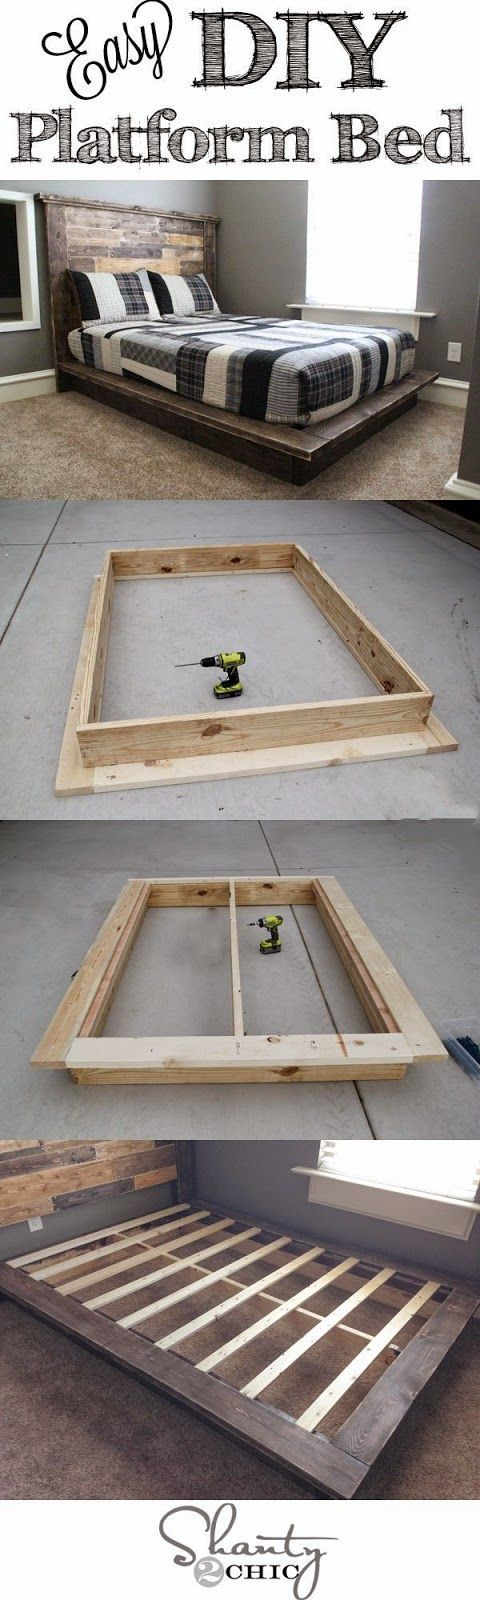 cool Easy DIY Platform Bed that anyone can build! by http://www.cool-homedecorations.xyz/bedroom-designs/easy-diy-platform-bed-that-anyone-can-build/